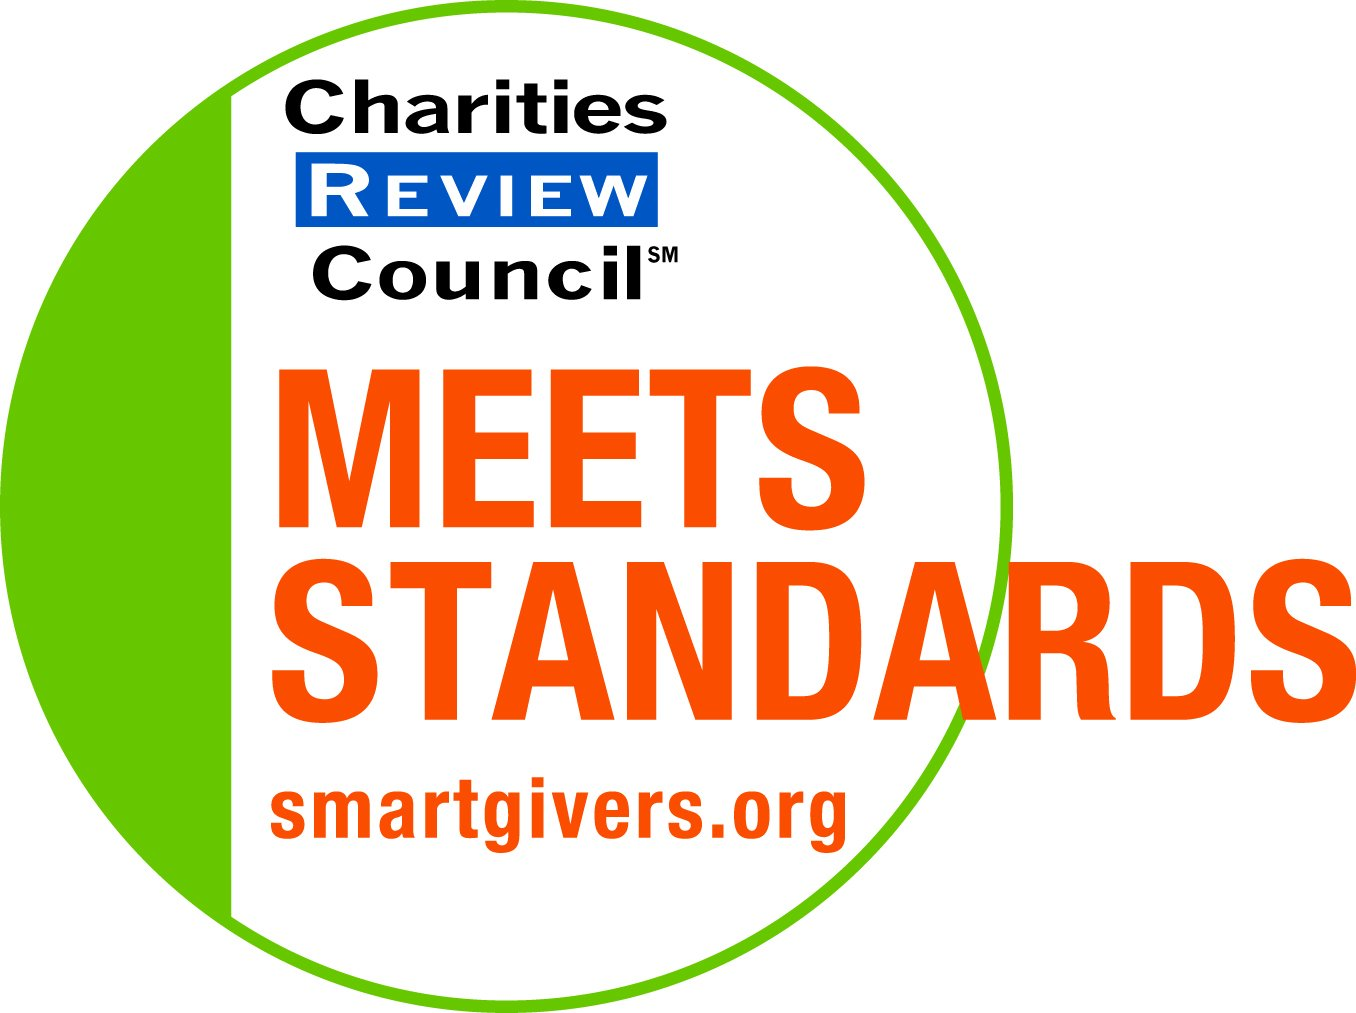 Charities Review Council Meets Standards certification logo.